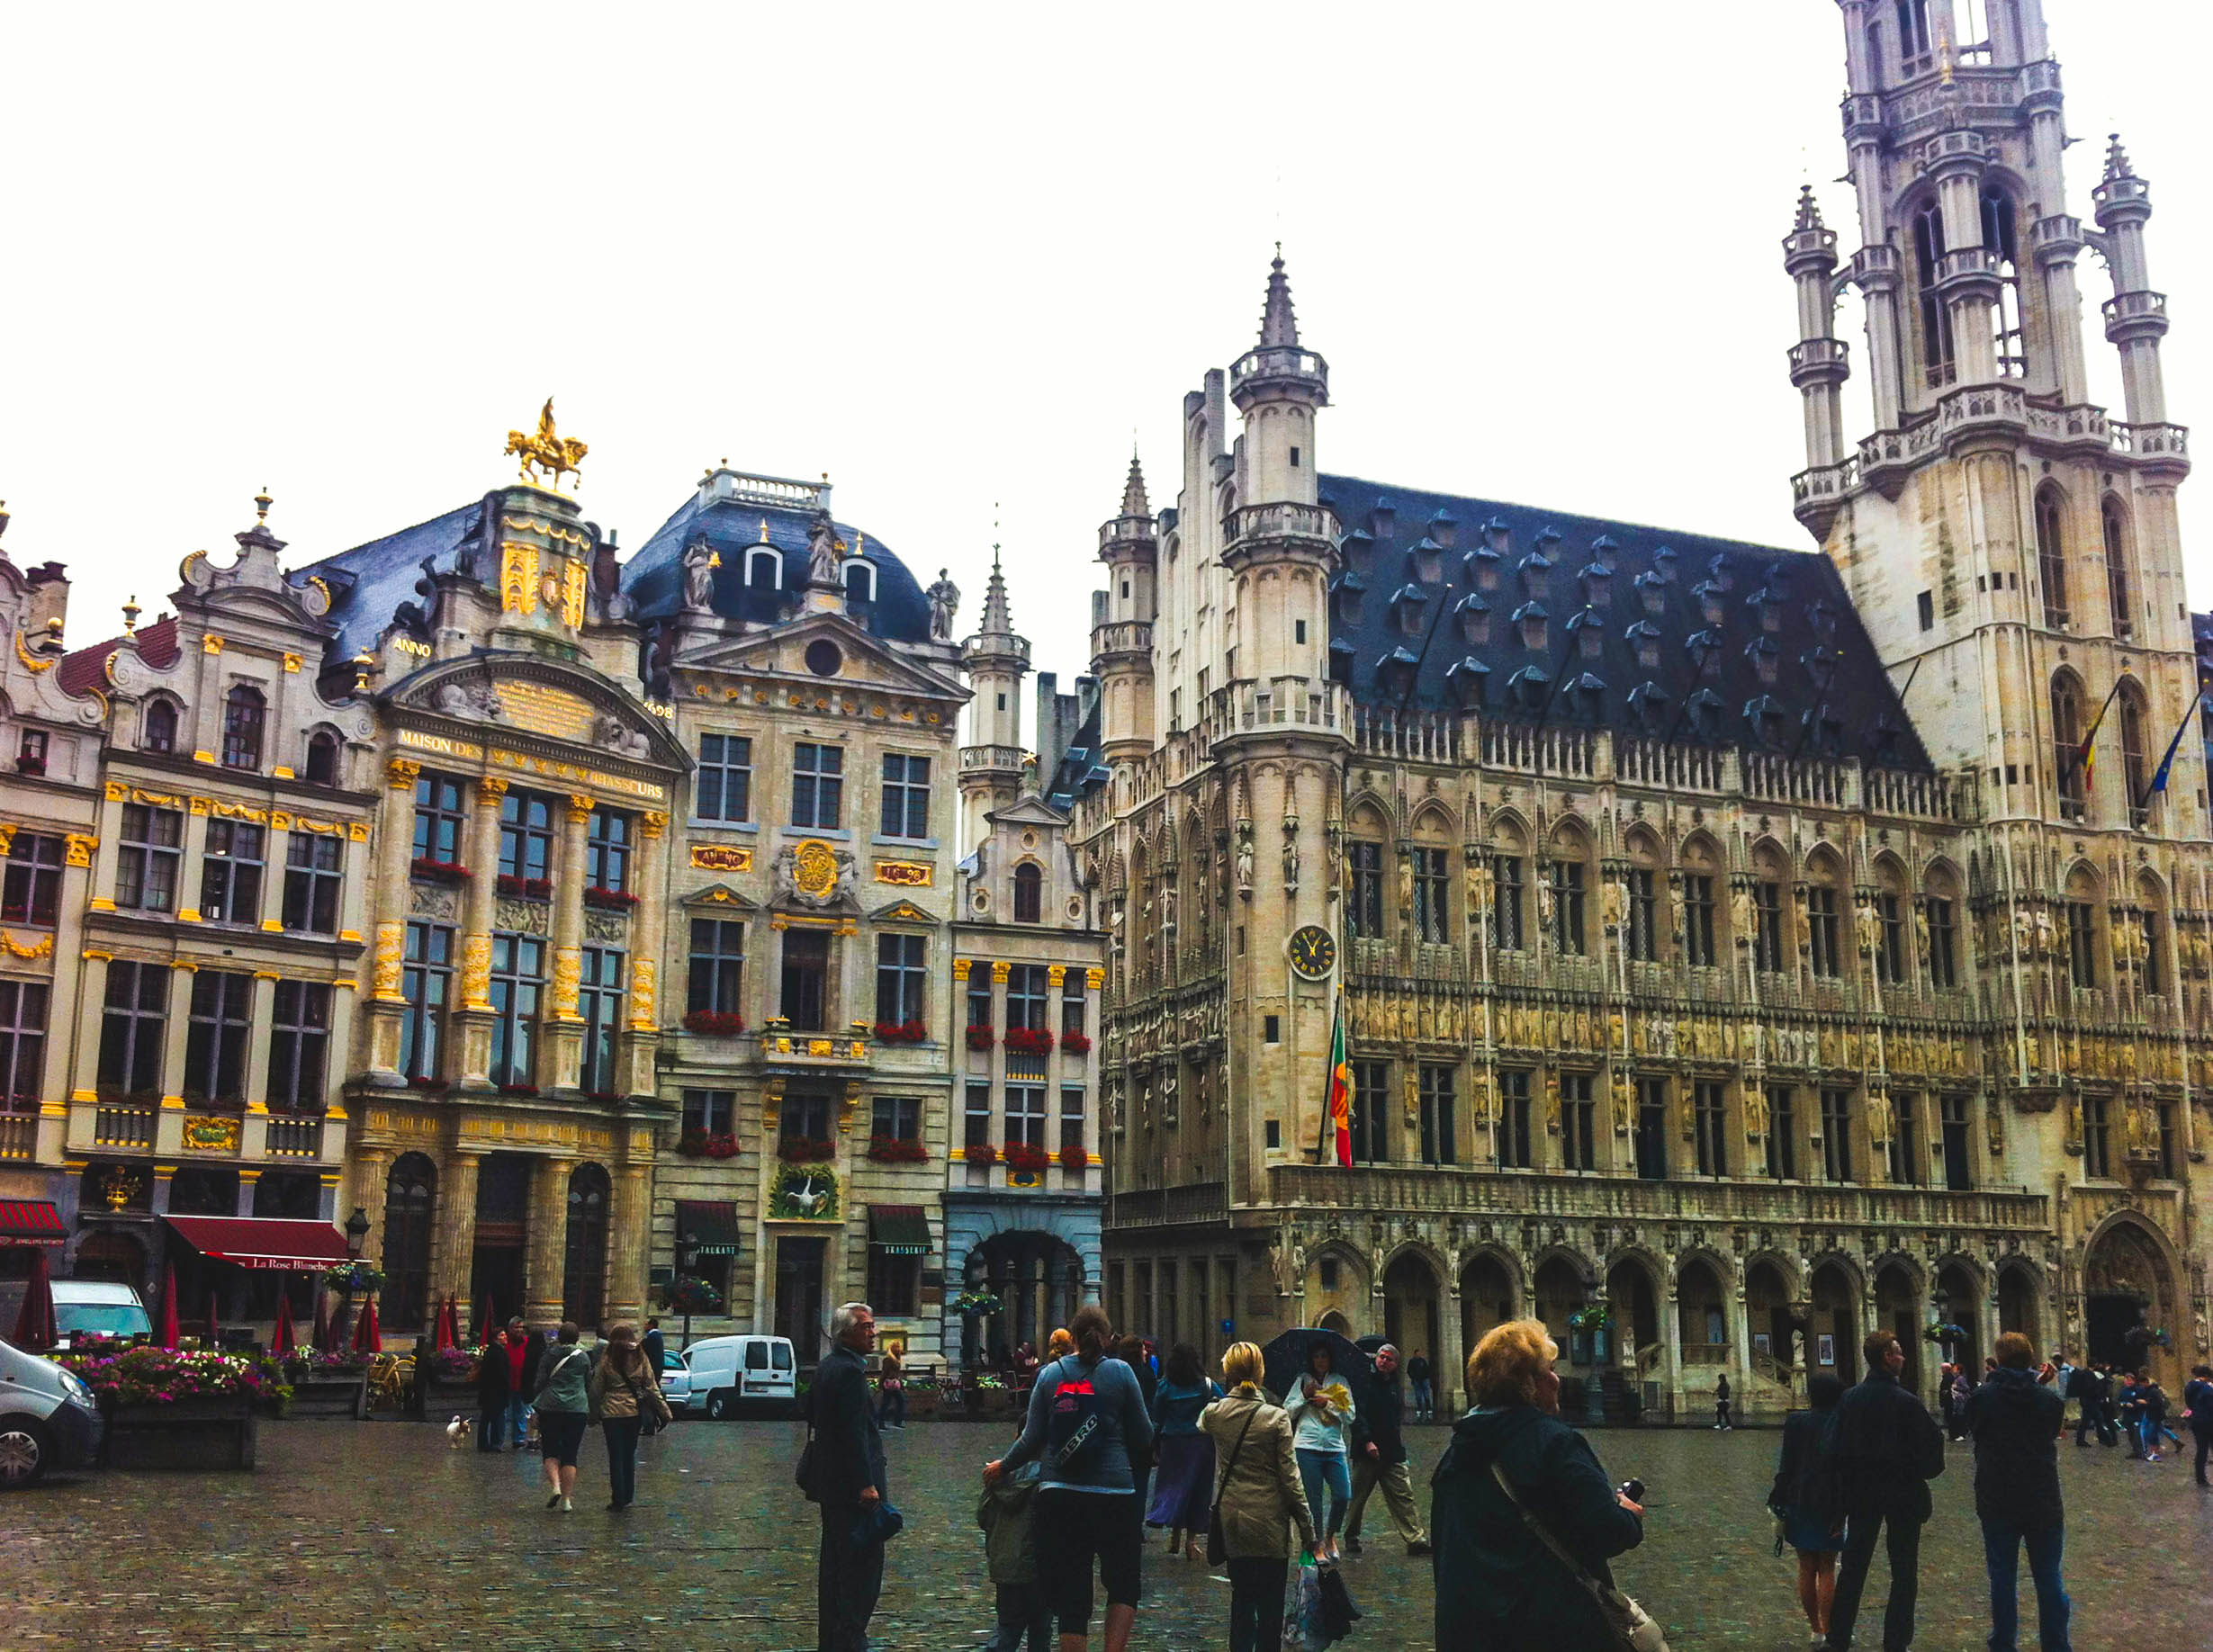 The Grote Markt (Main square) in Antwerp by Nneya Richards